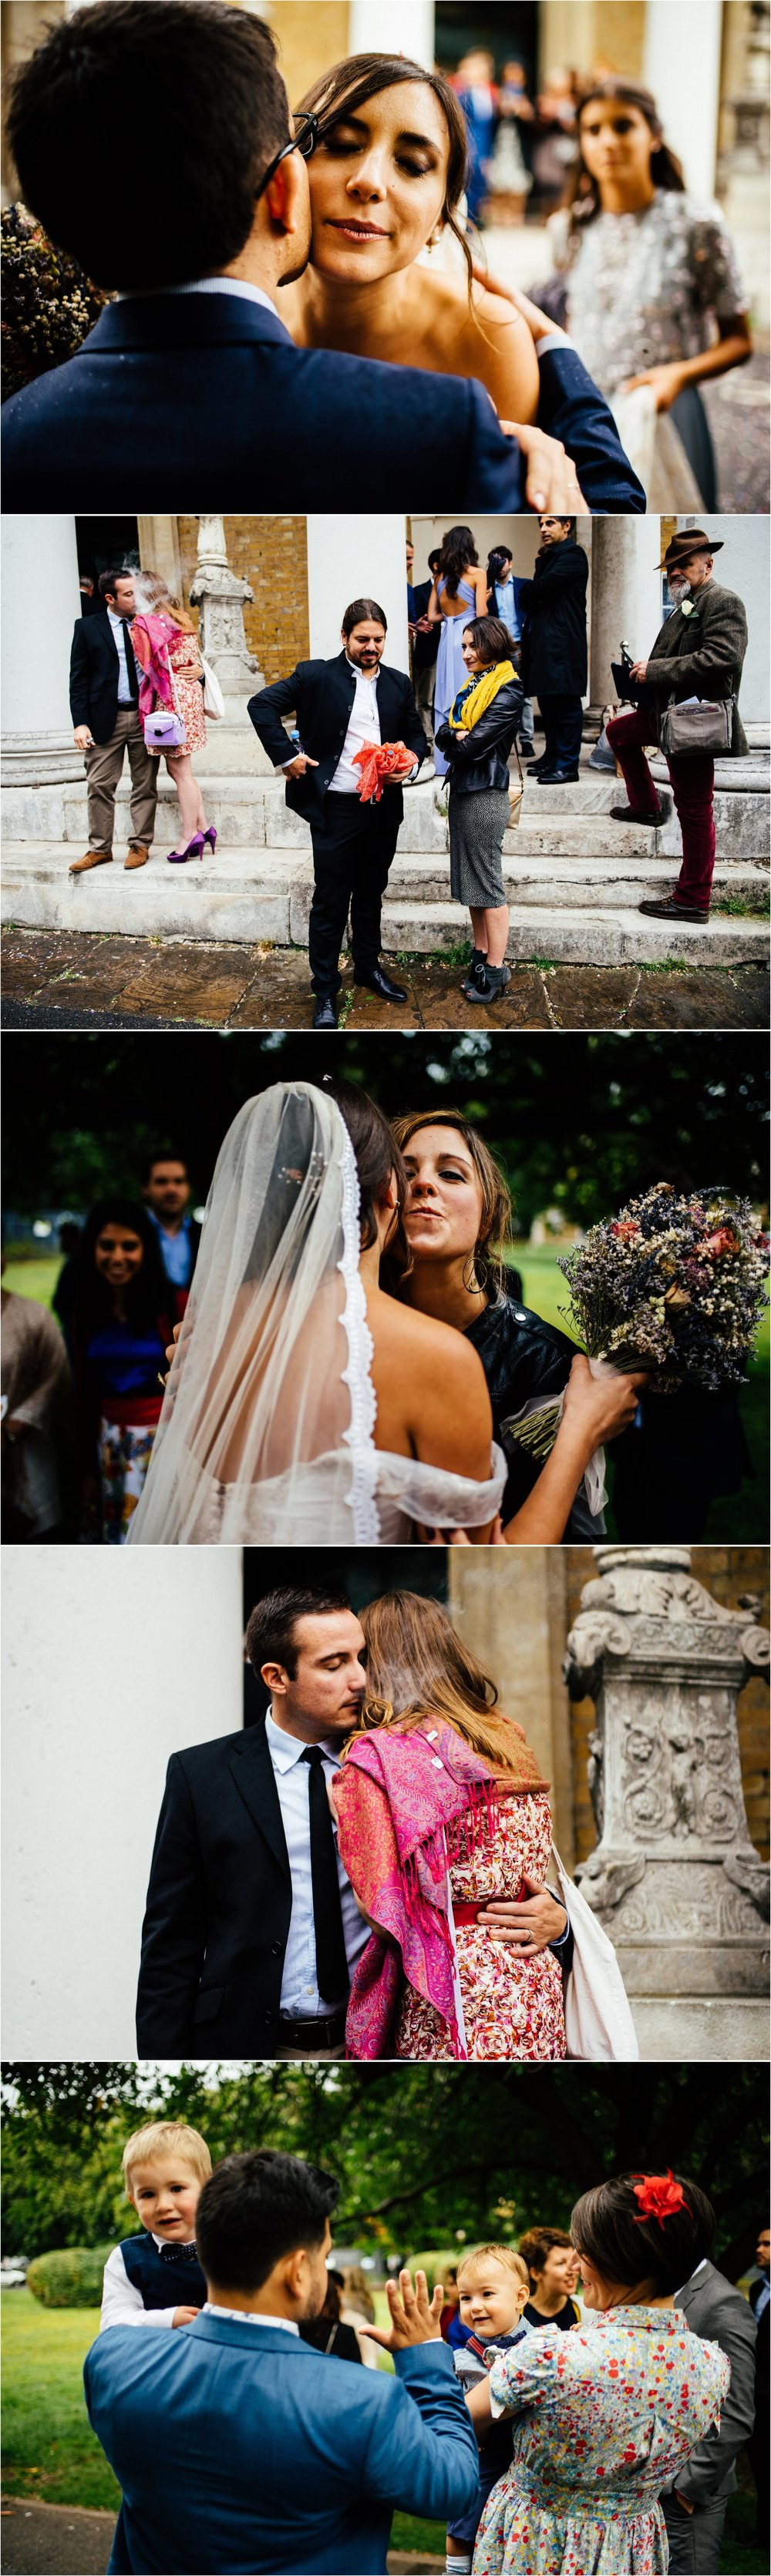 UK wedding photographer_0261.jpg